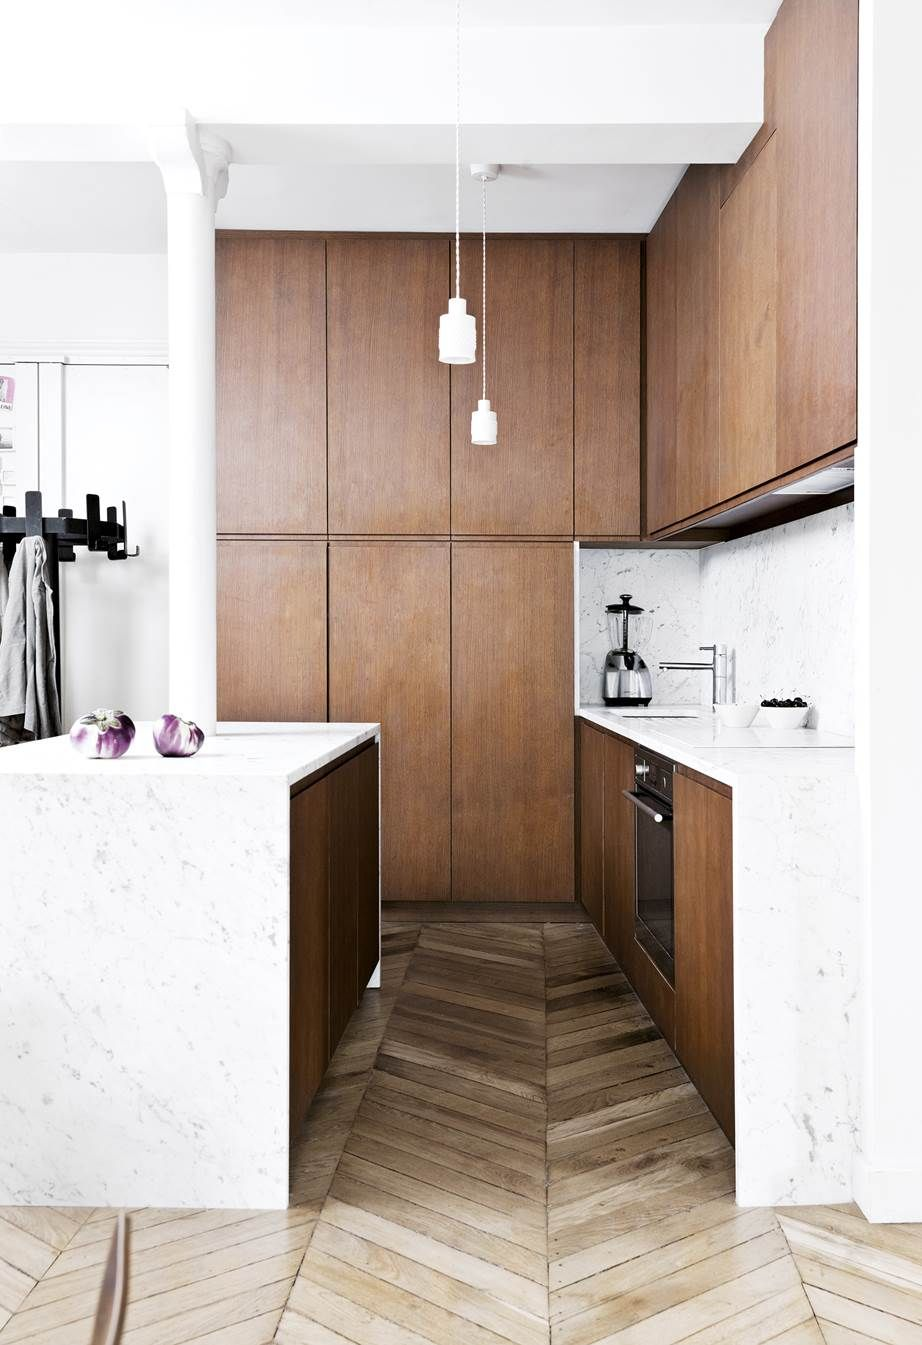 20 Kitchens With Clever Design Ideas To Steal Apartment Decorating - Kitchen-design-shows-exterior